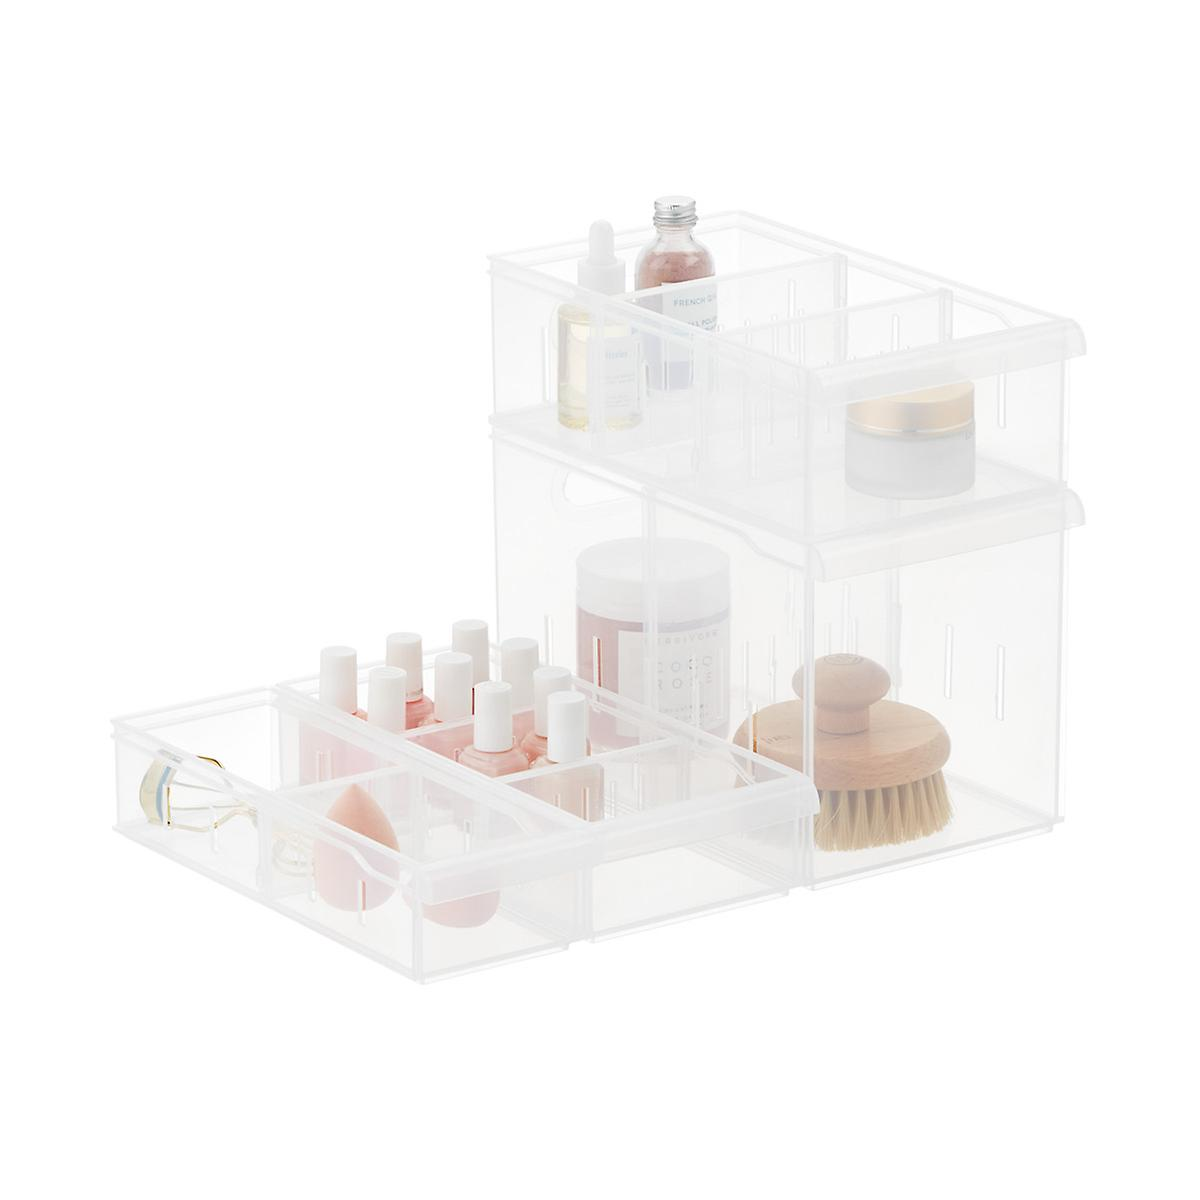 This product is a major game changer, according to a professional organizer.